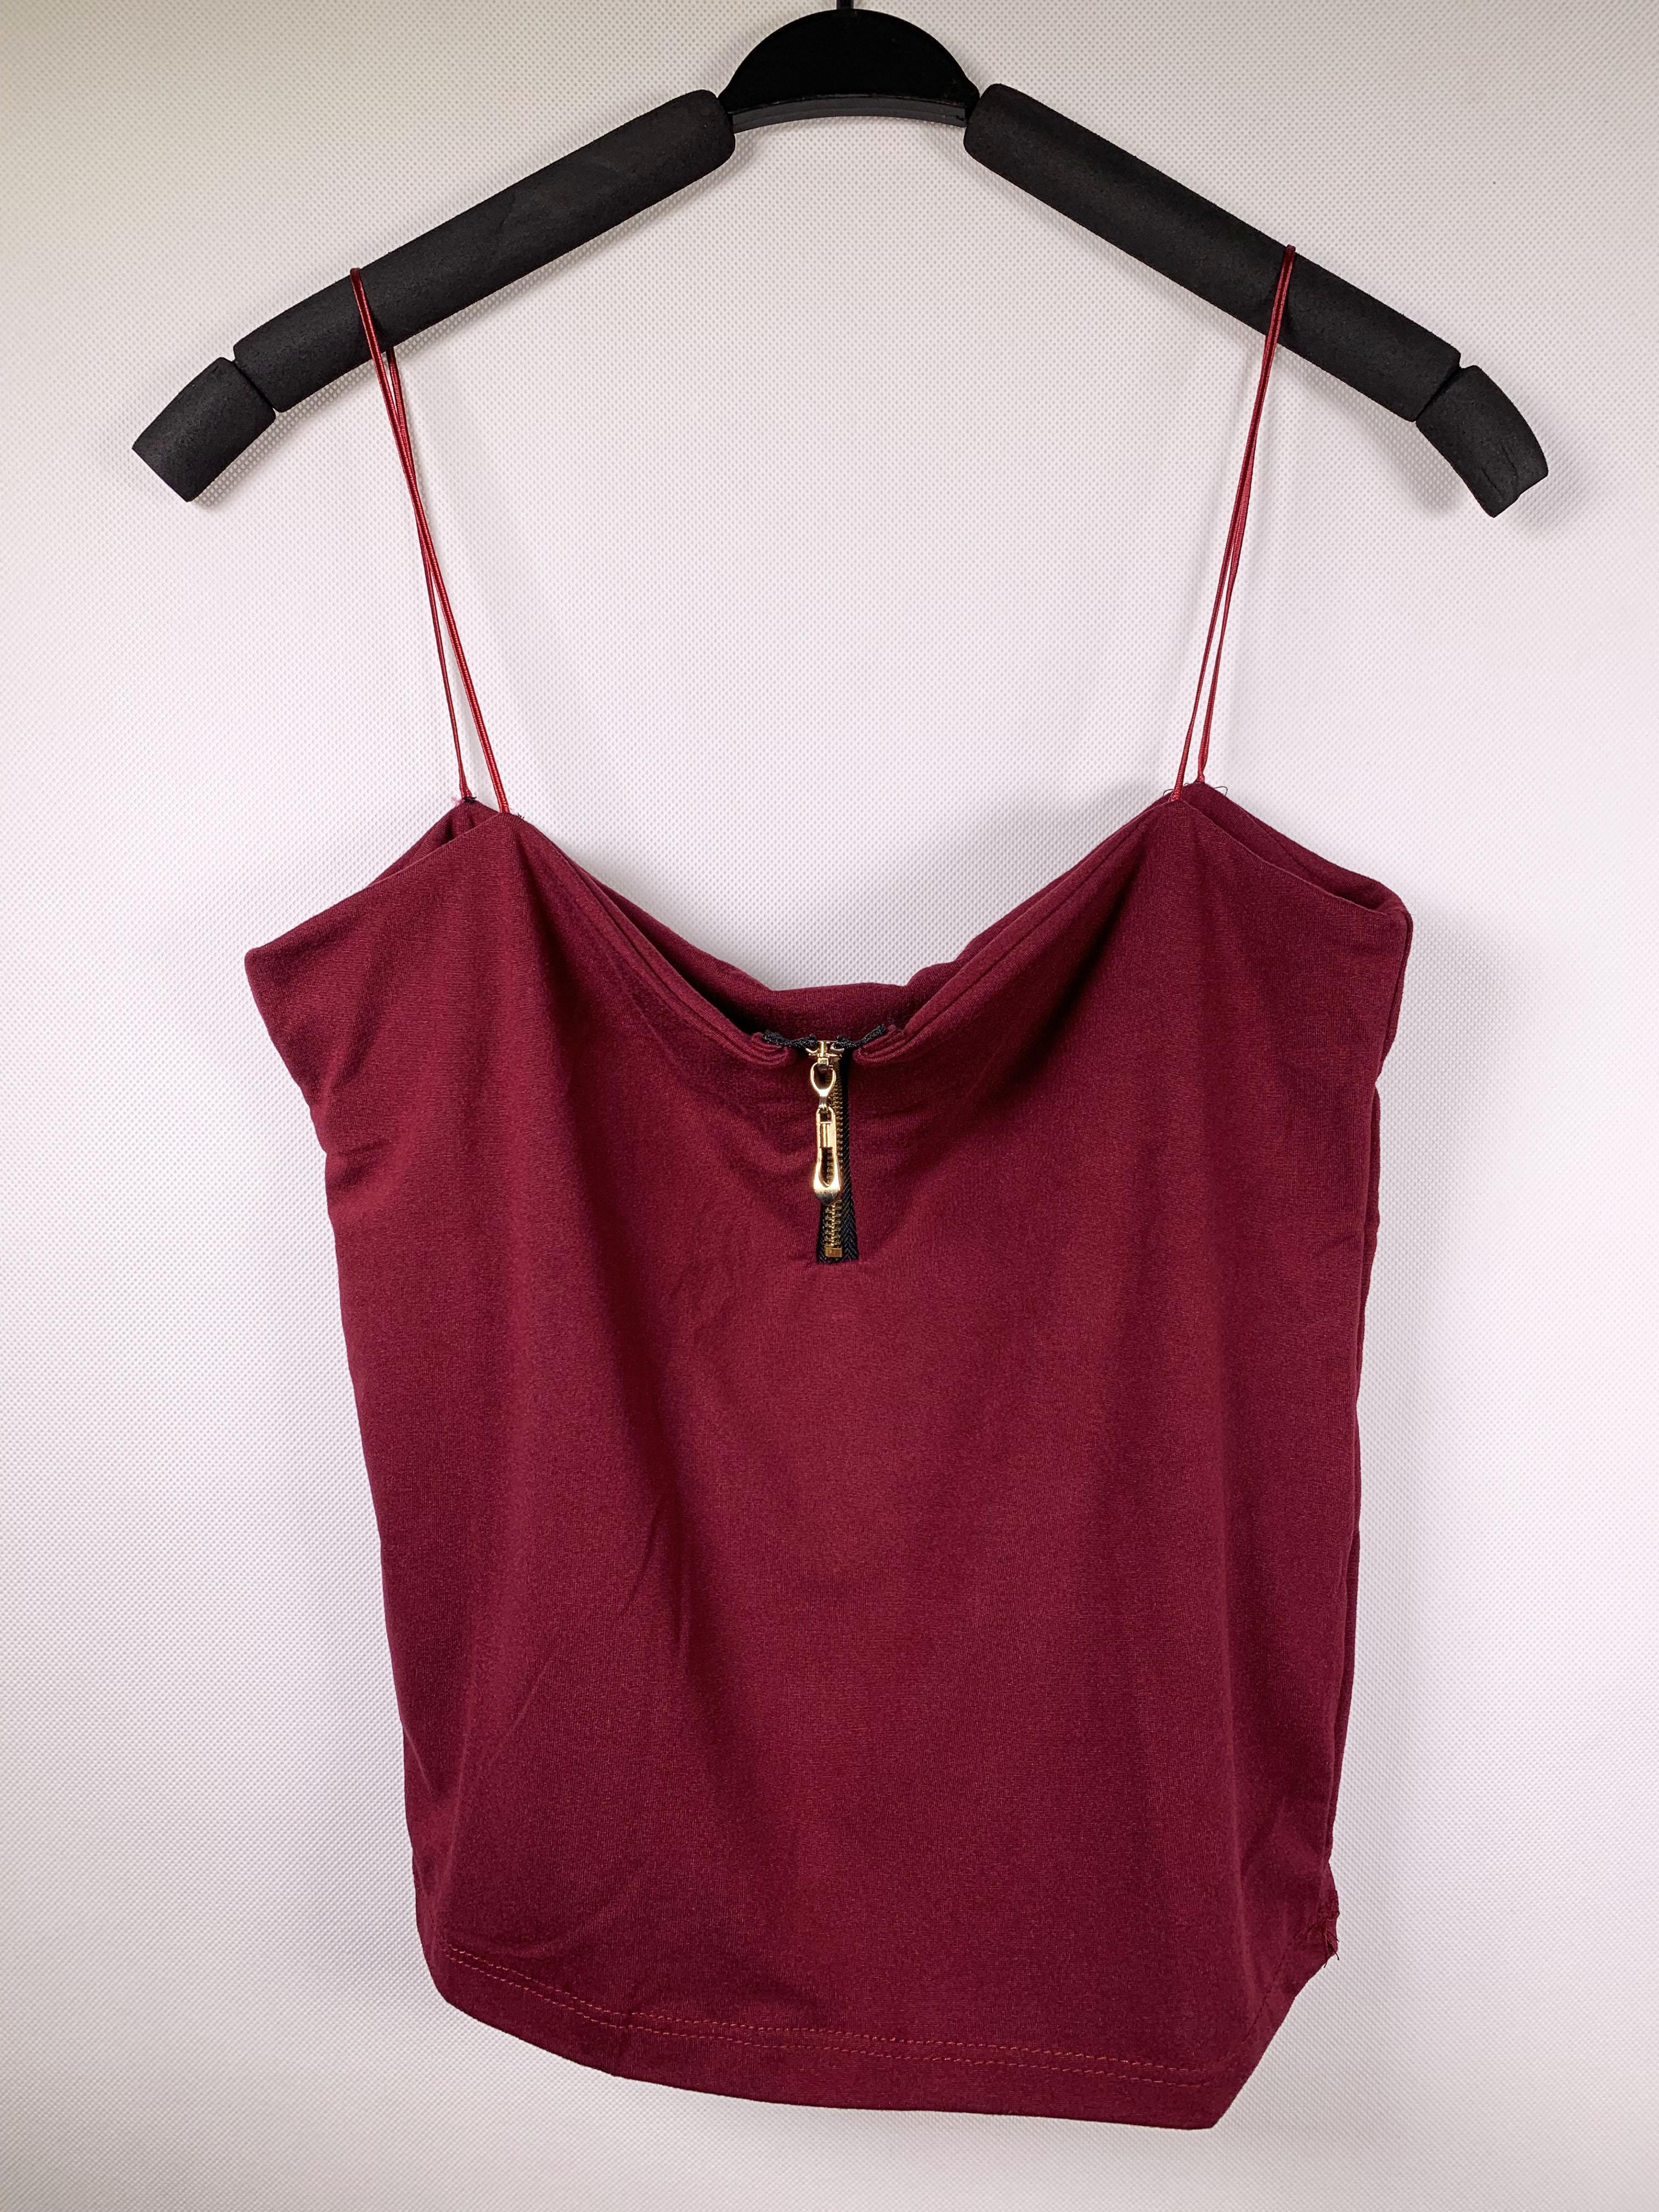 9bfb198cadc4 Tank Tops for Women for sale - Camisole for Women online brands ...